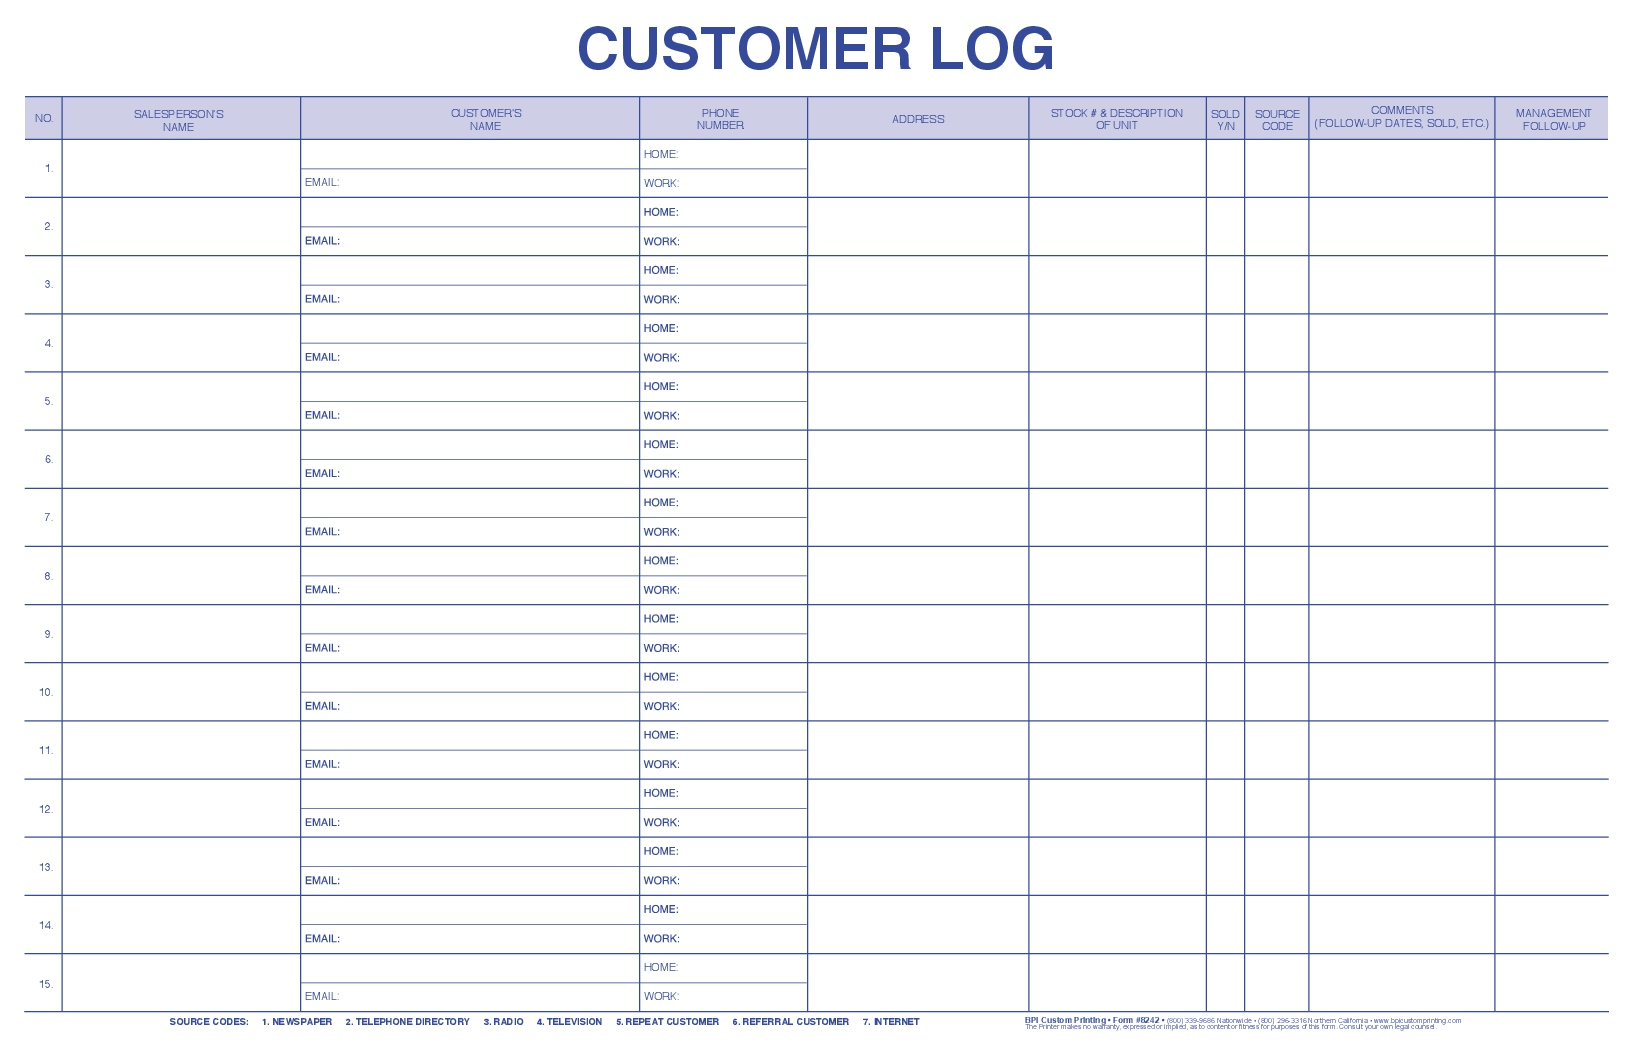 Selective image with customer sign in sheet